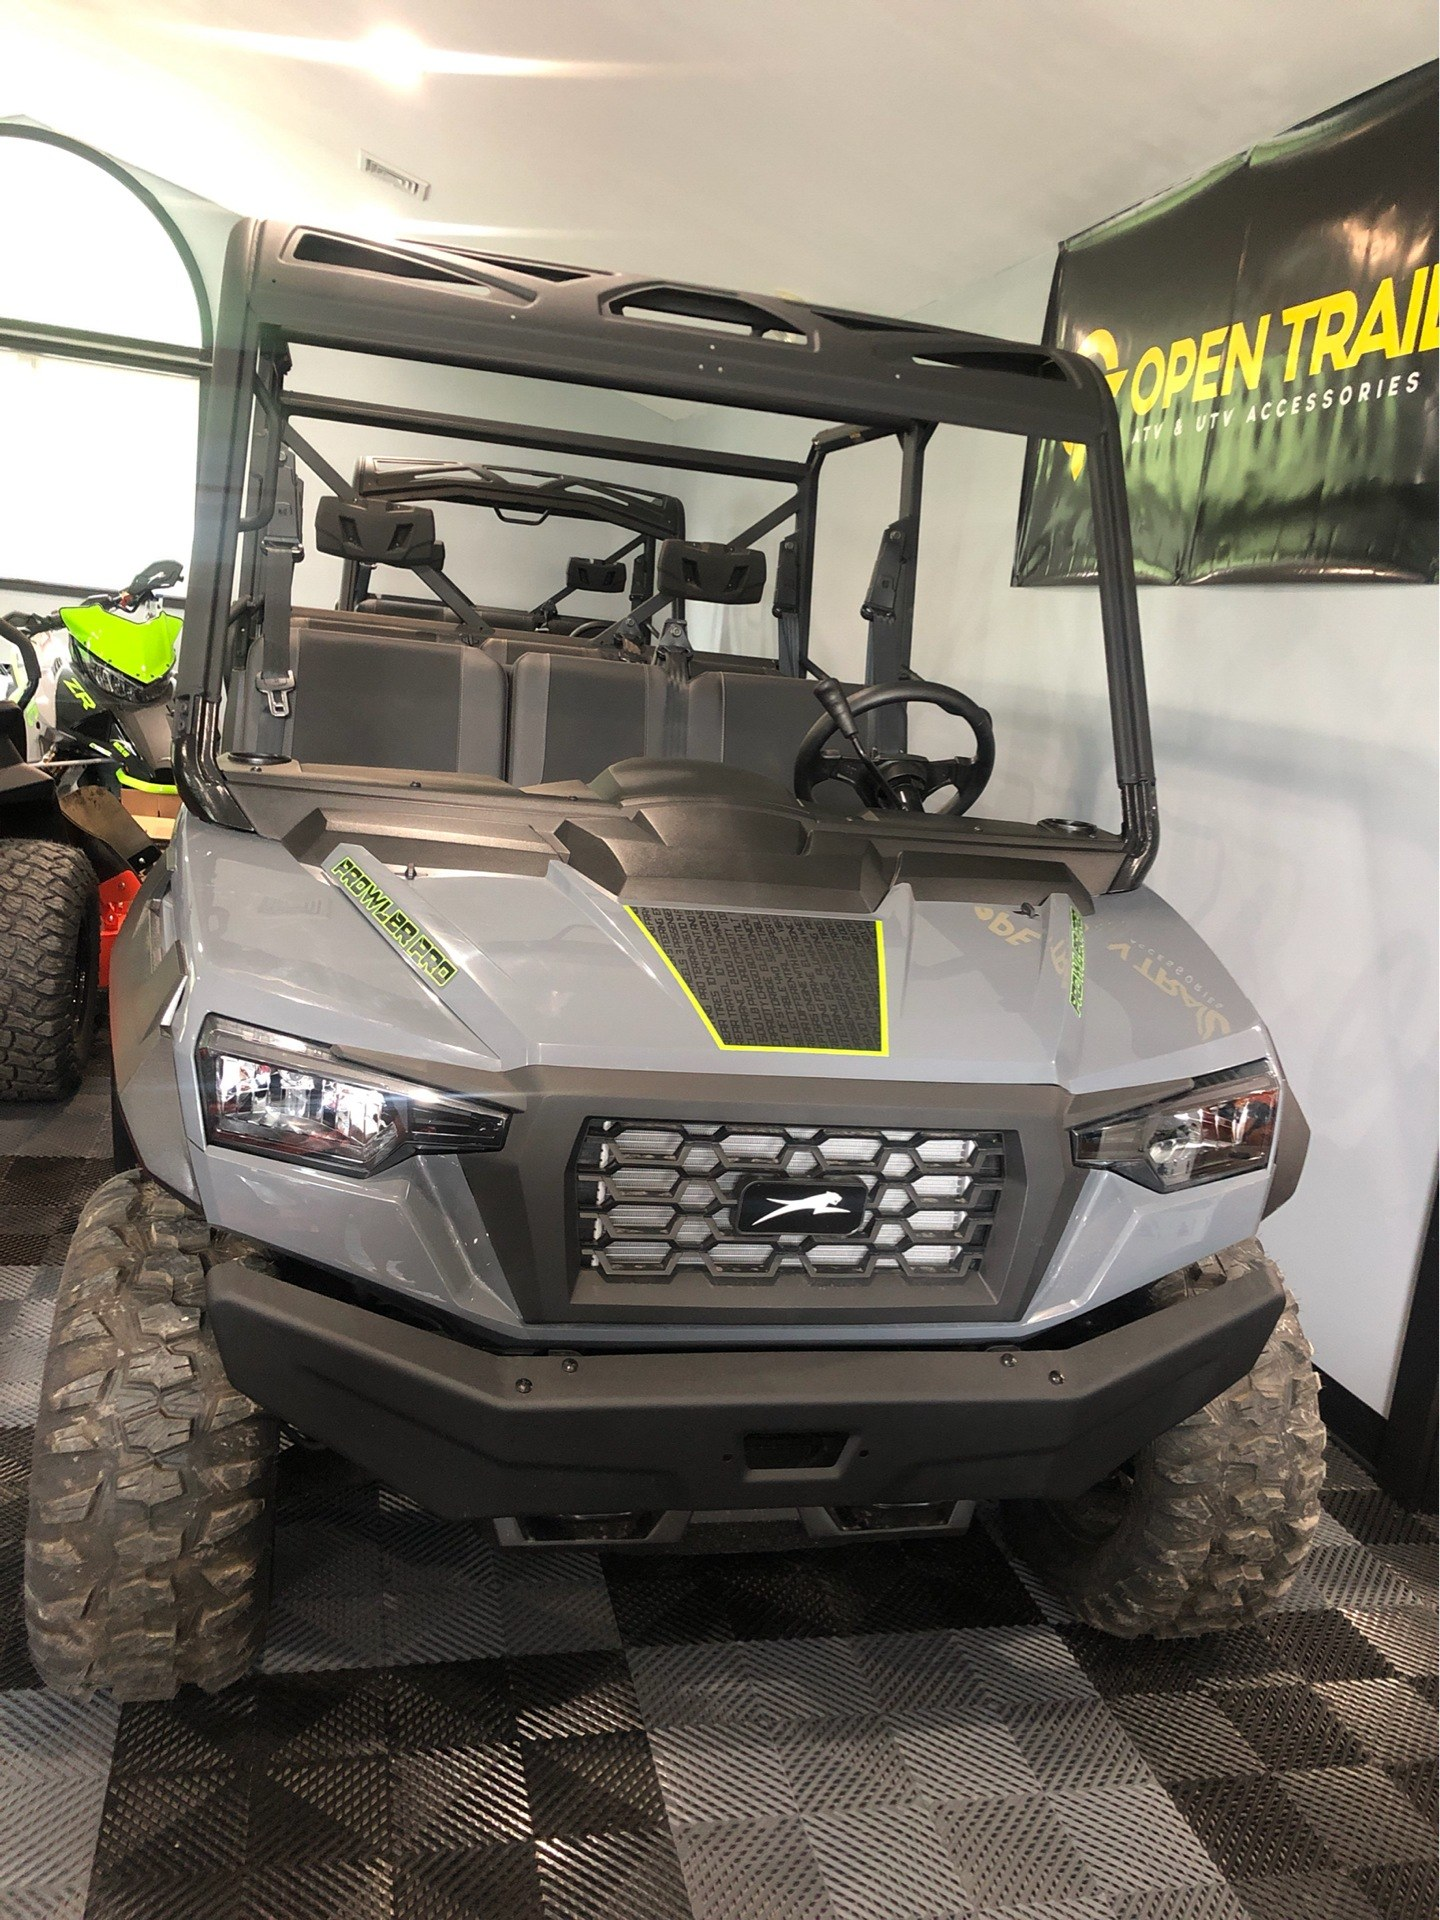 2020 Arctic Cat Prowler Pro Crew in Effort, Pennsylvania - Photo 1